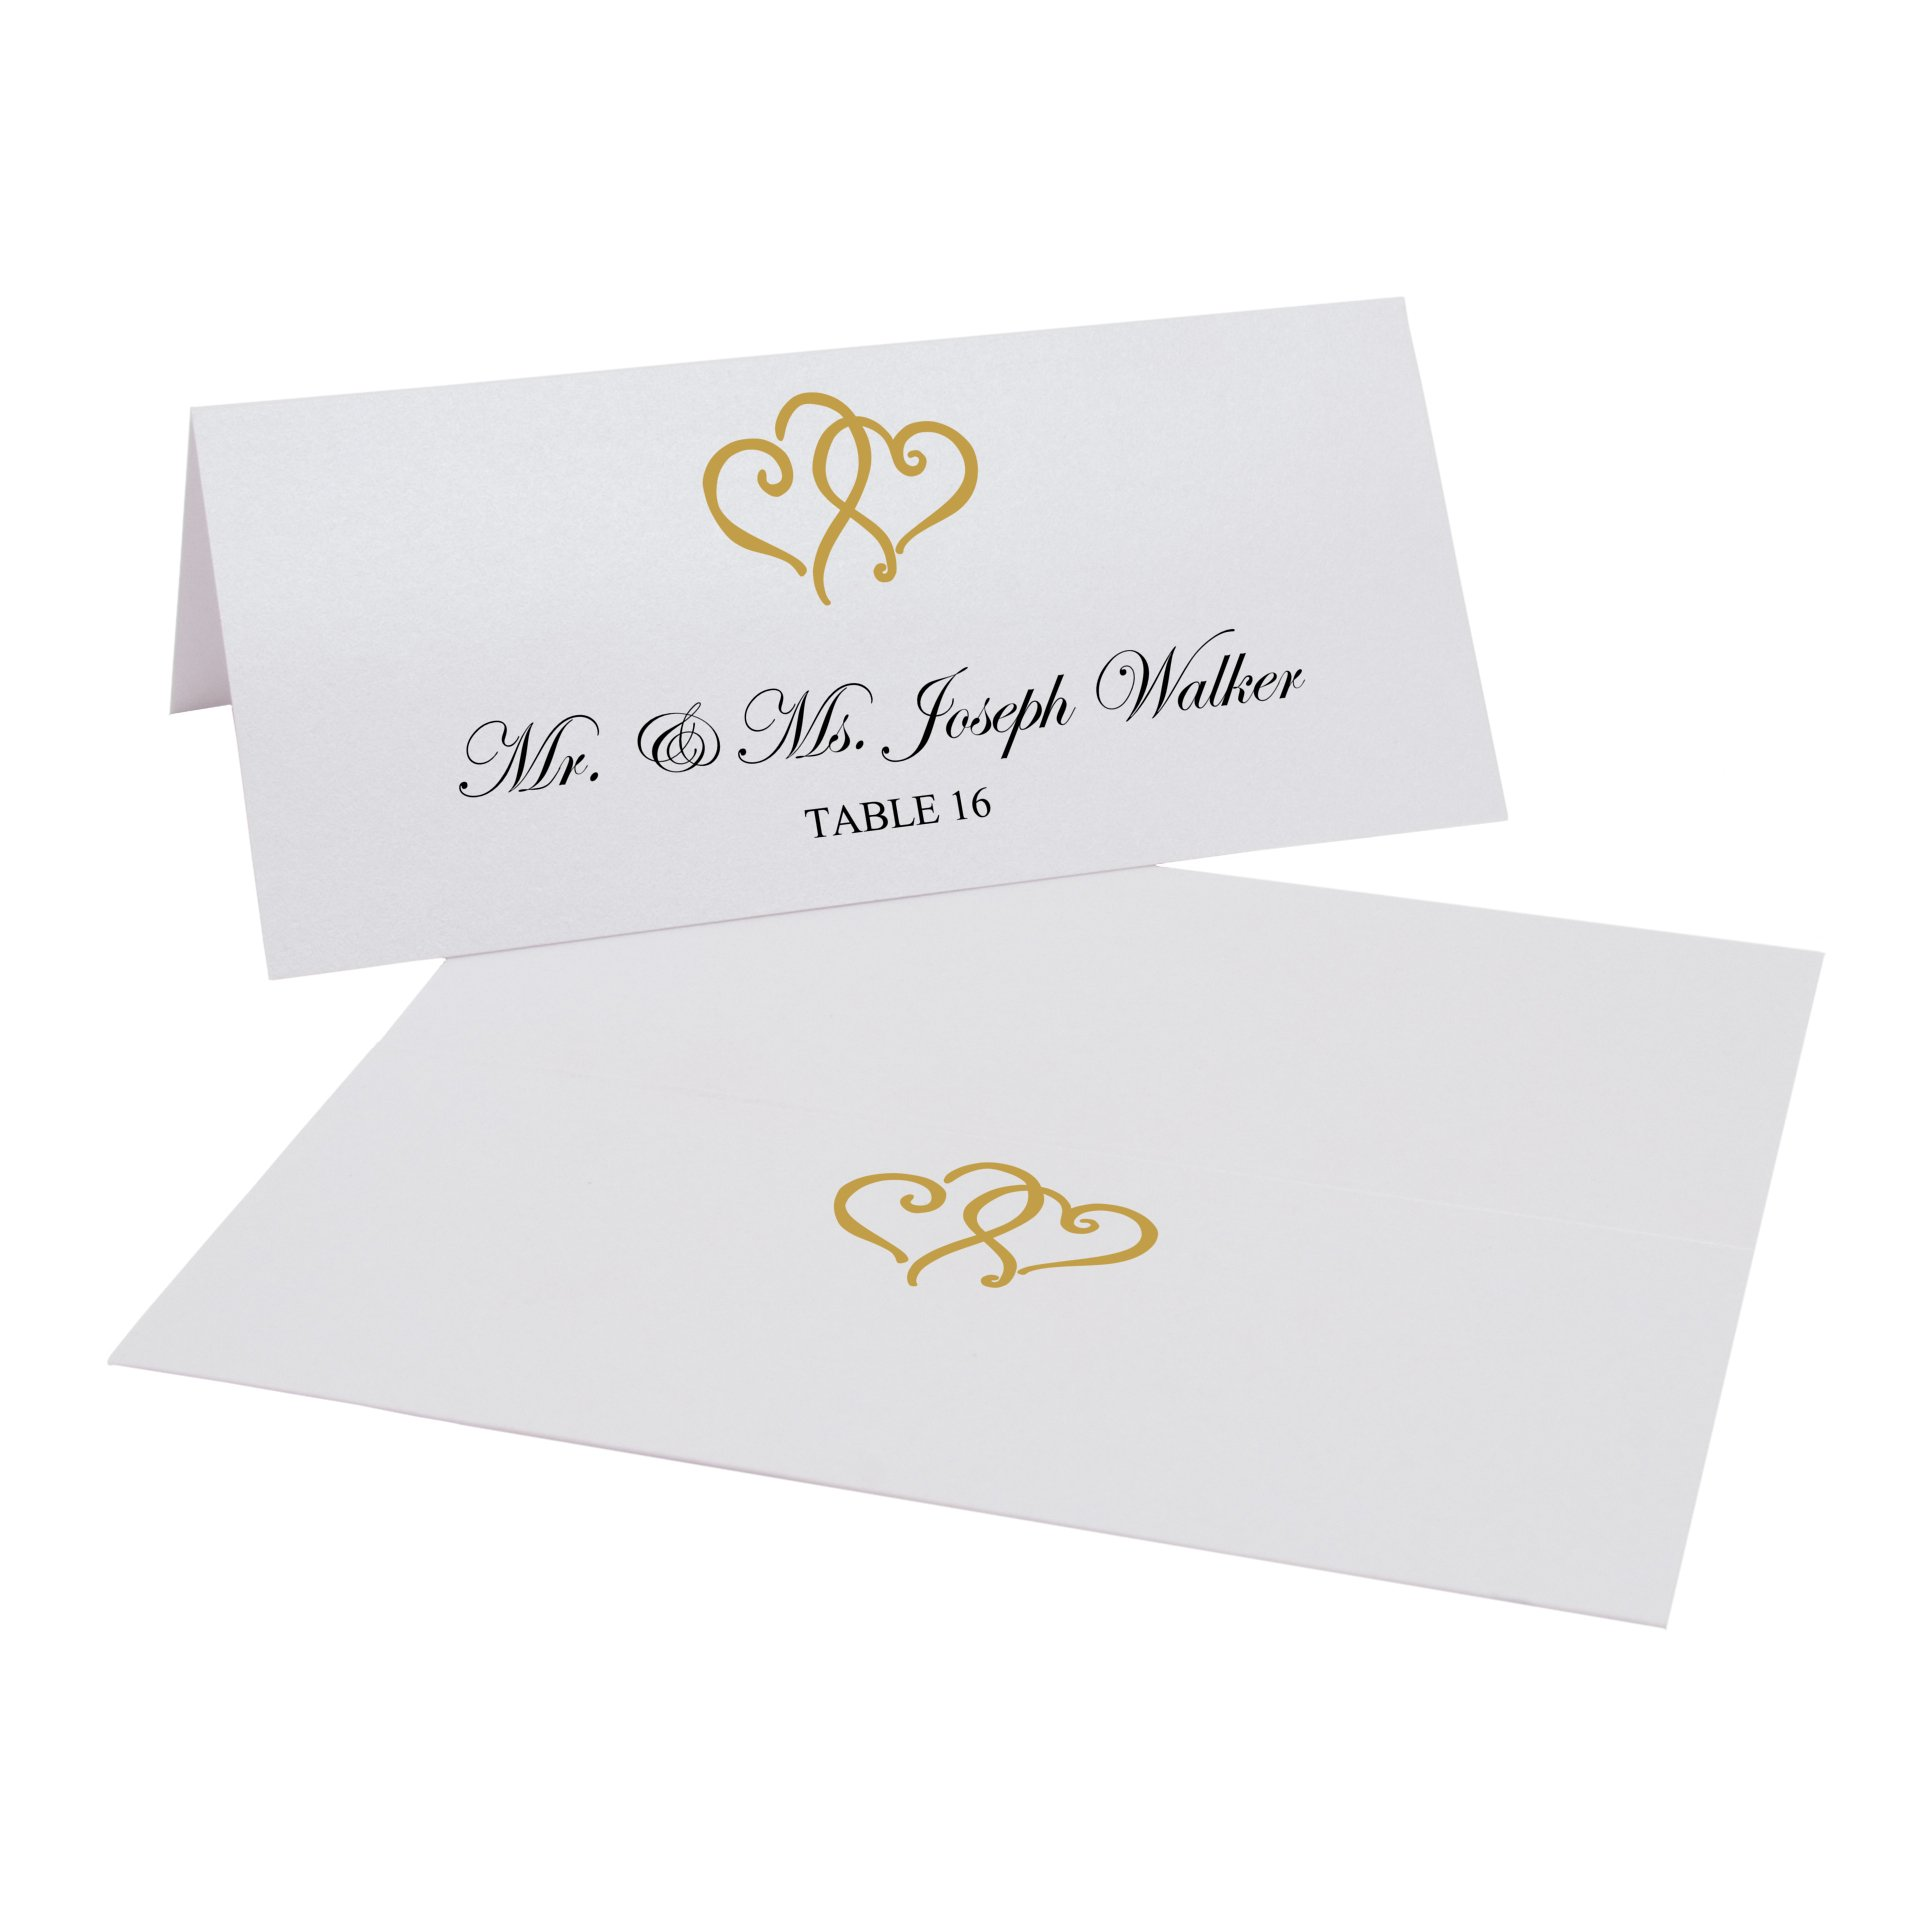 Documents and Designs Linked Hearts Easy Print Place Cards (Select Color), Gold, Set of 150 (25 Sheets)